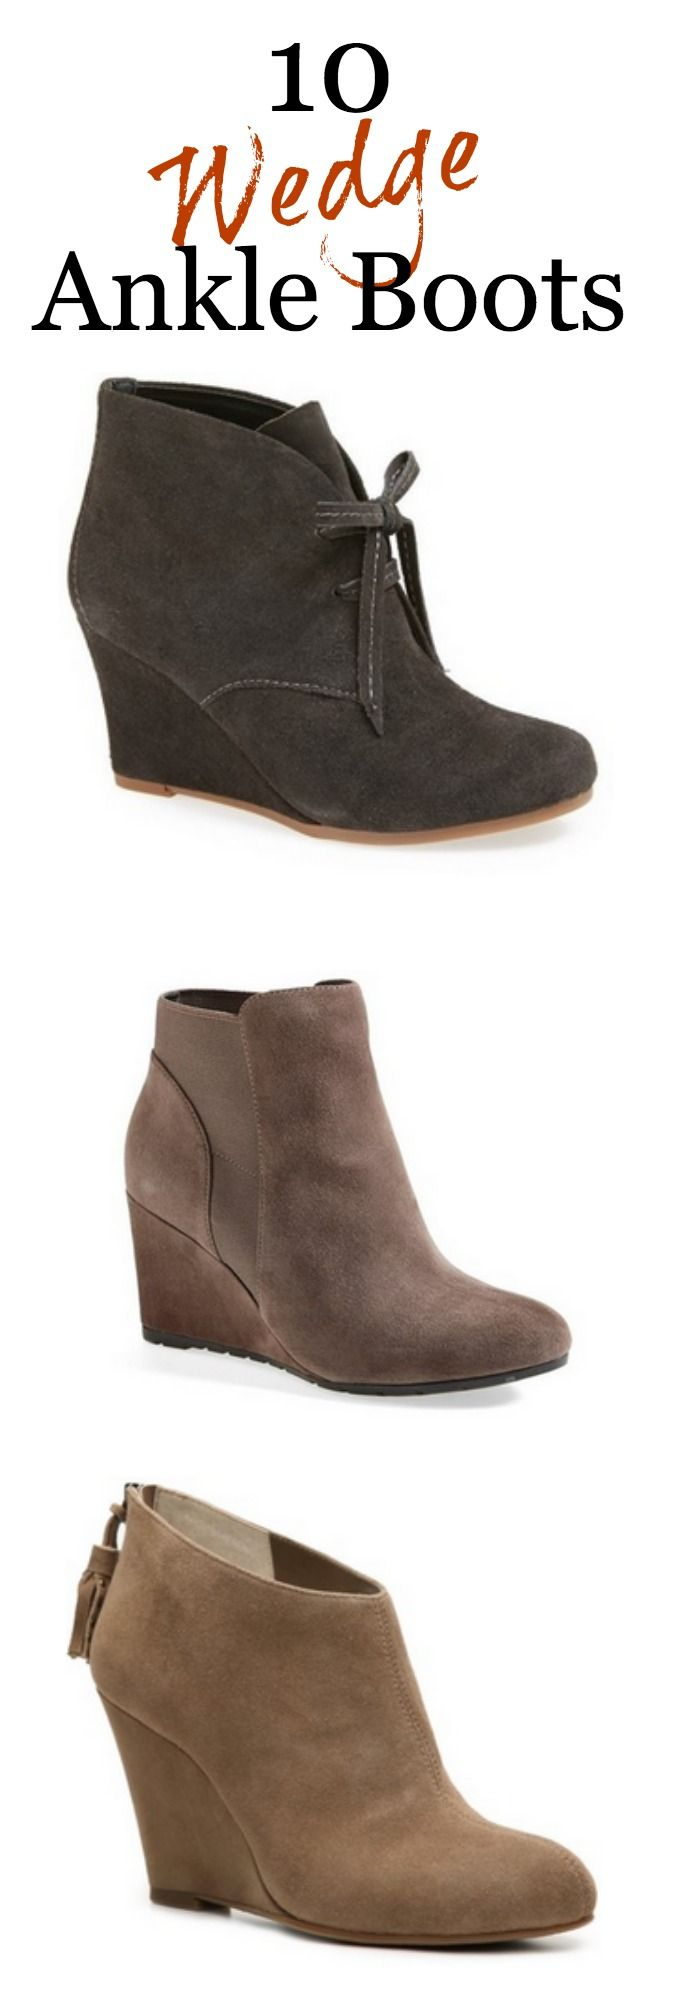 My life lol Wedge Ankle Boots #Fall #shoes #fashion